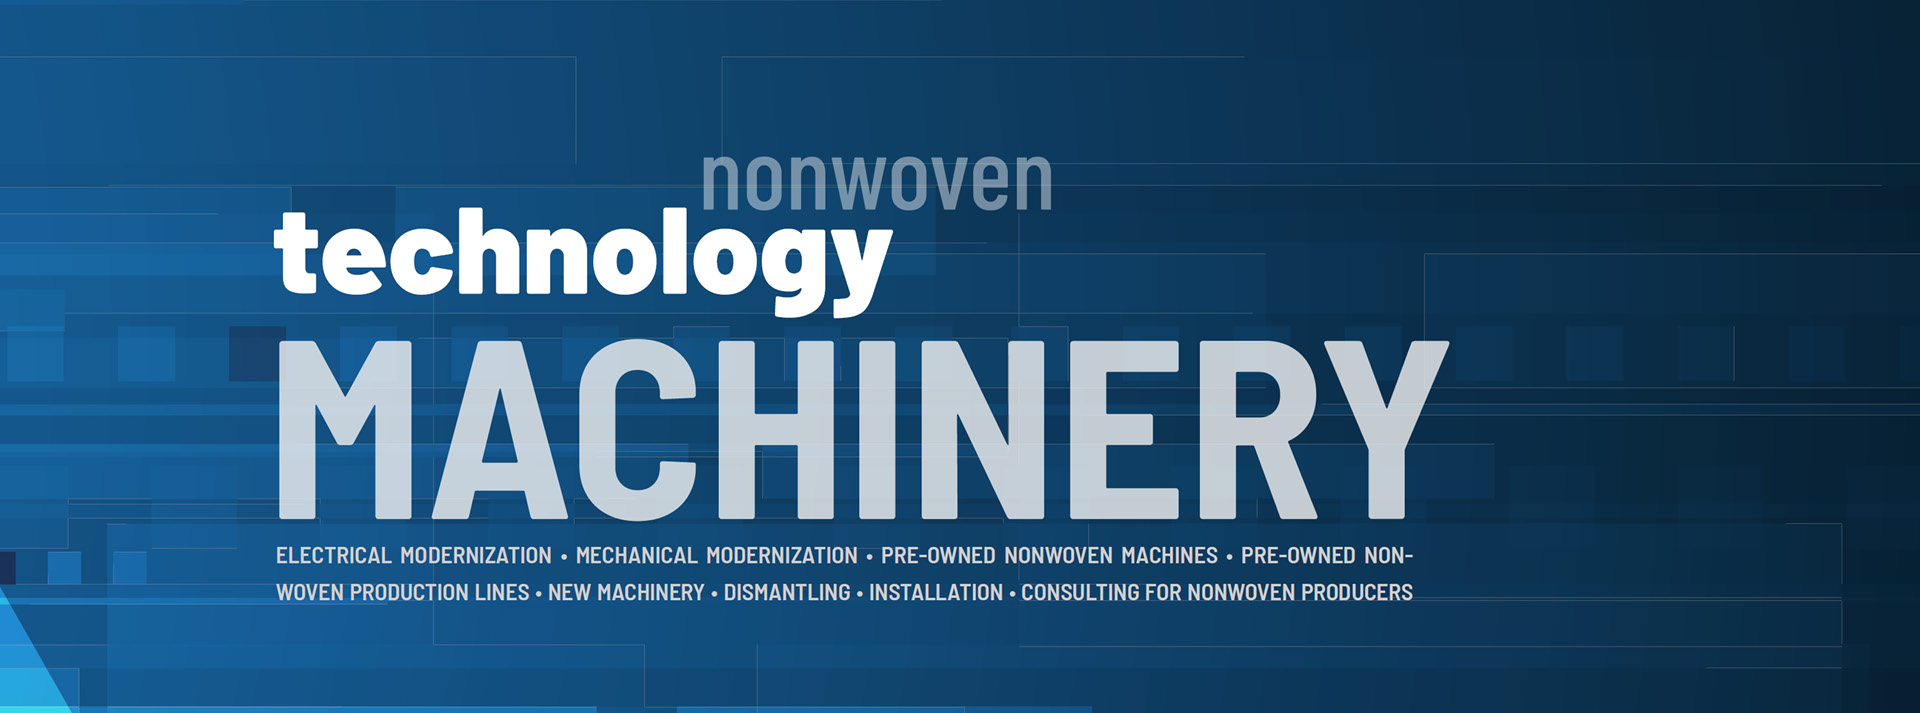 nonwoven_technology